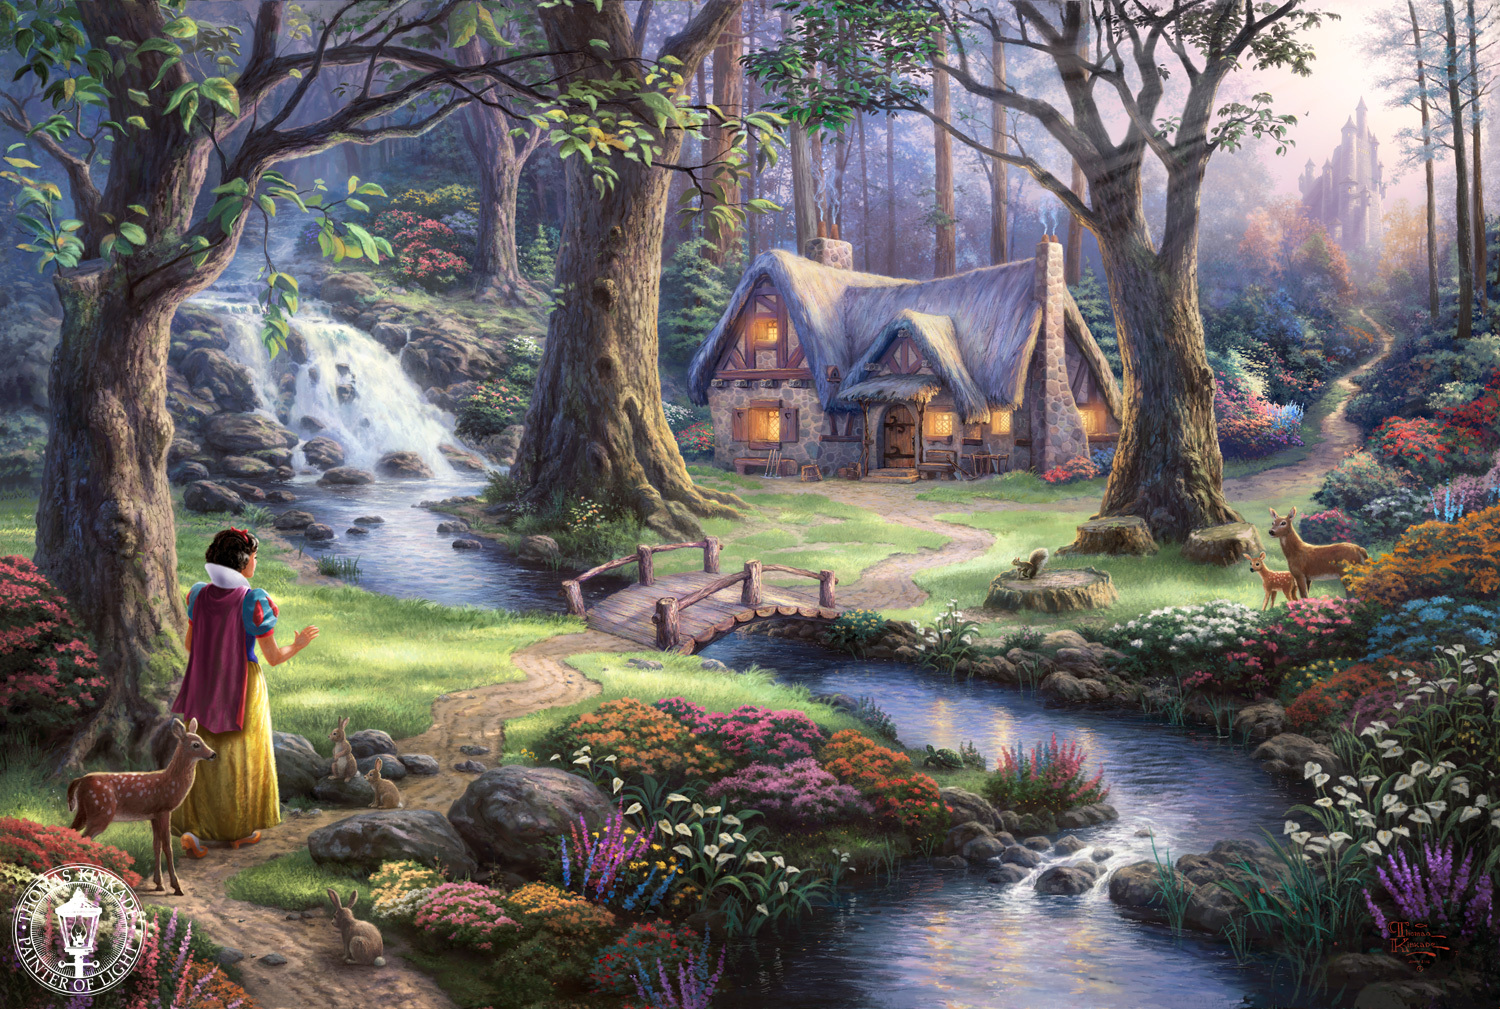 Disney princess thomas kinkade &;disney dreams&;